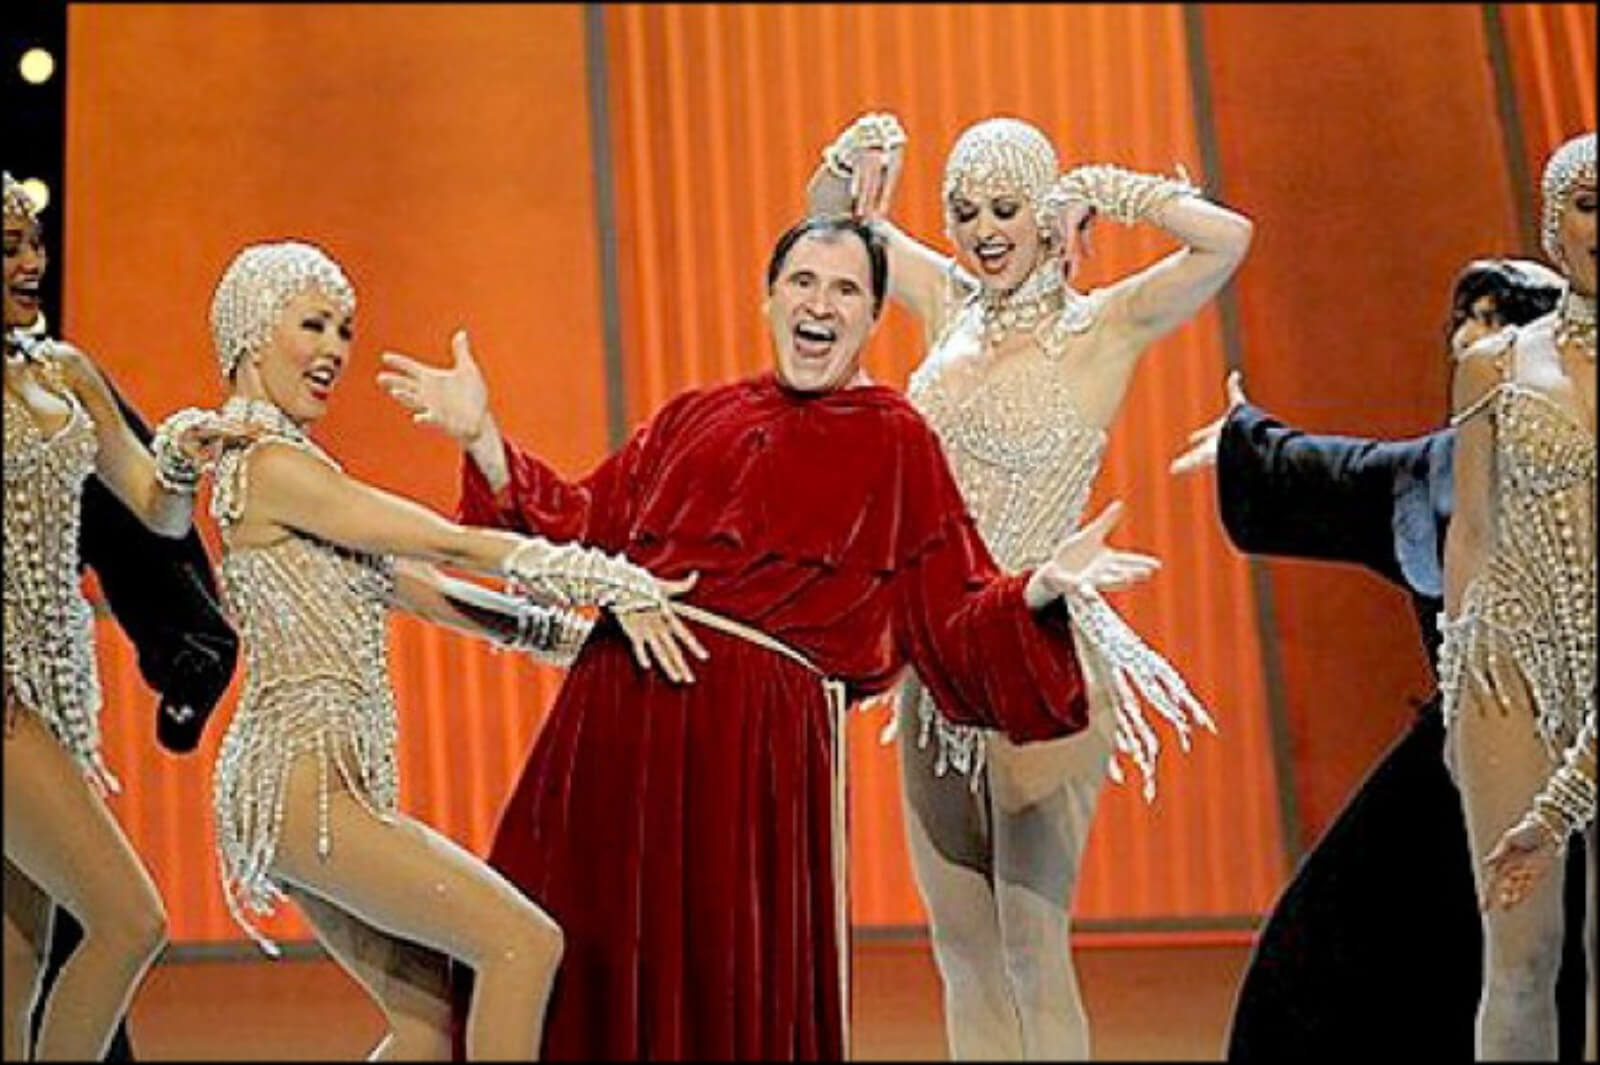 Richard Kind and The Pearl Girls. Richard is dressed as a monk while the girls dance around him. One is grabbing his belt.